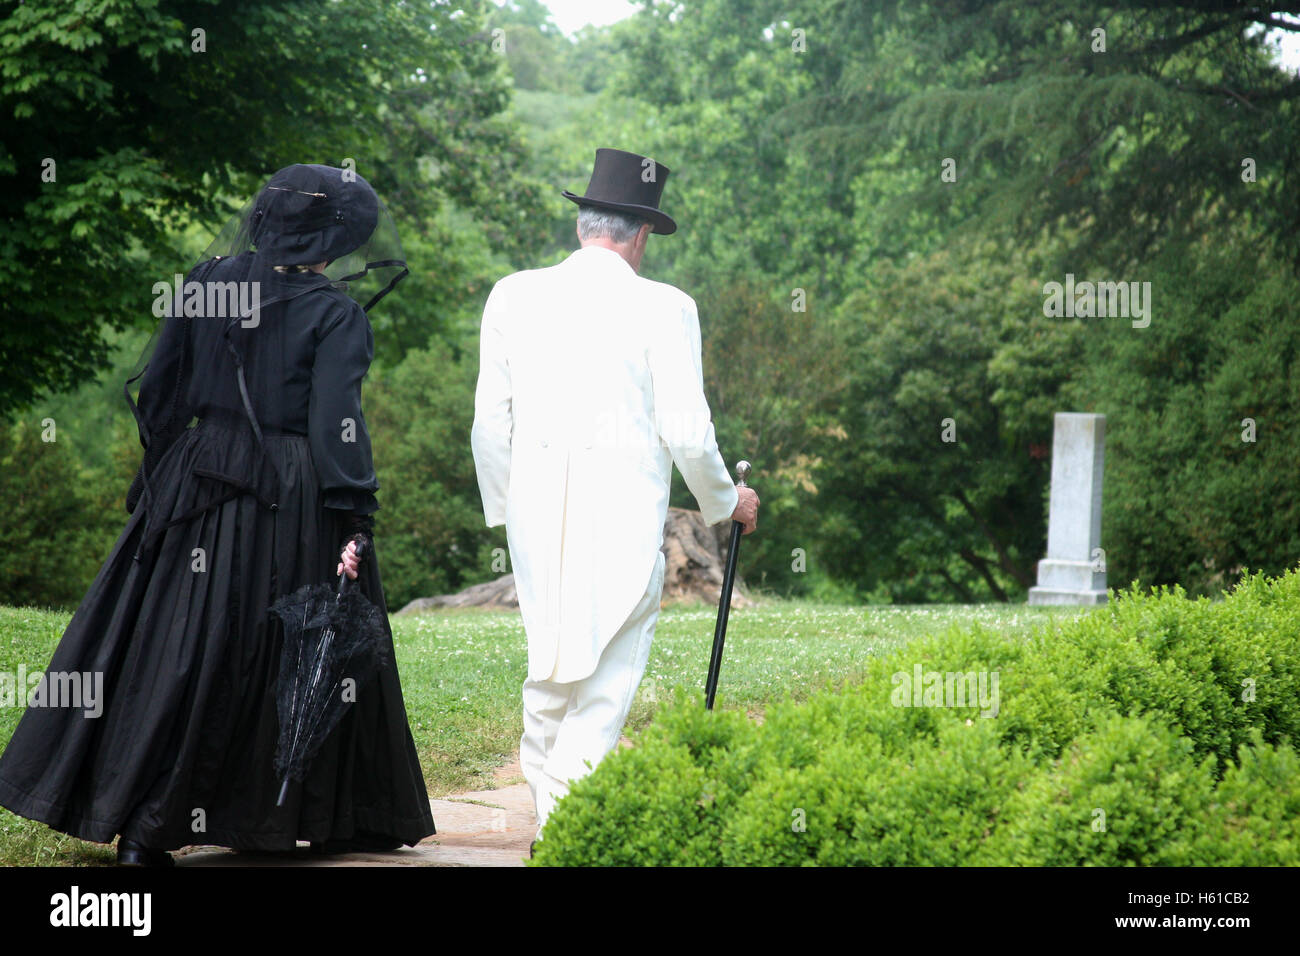 Couple in old style attire walking in park - Stock Image